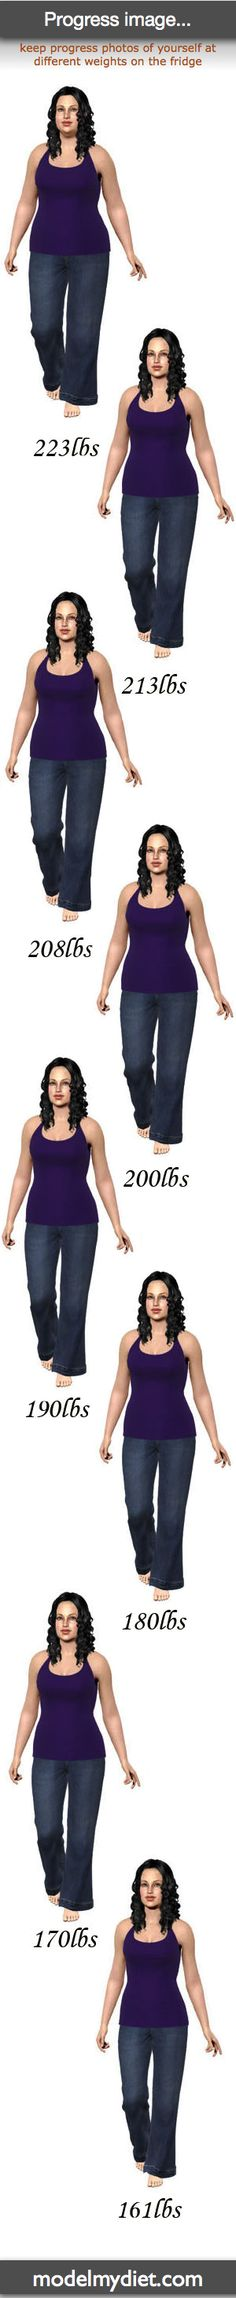 Make a progress image of your target body/weight and stick it on your fridge.